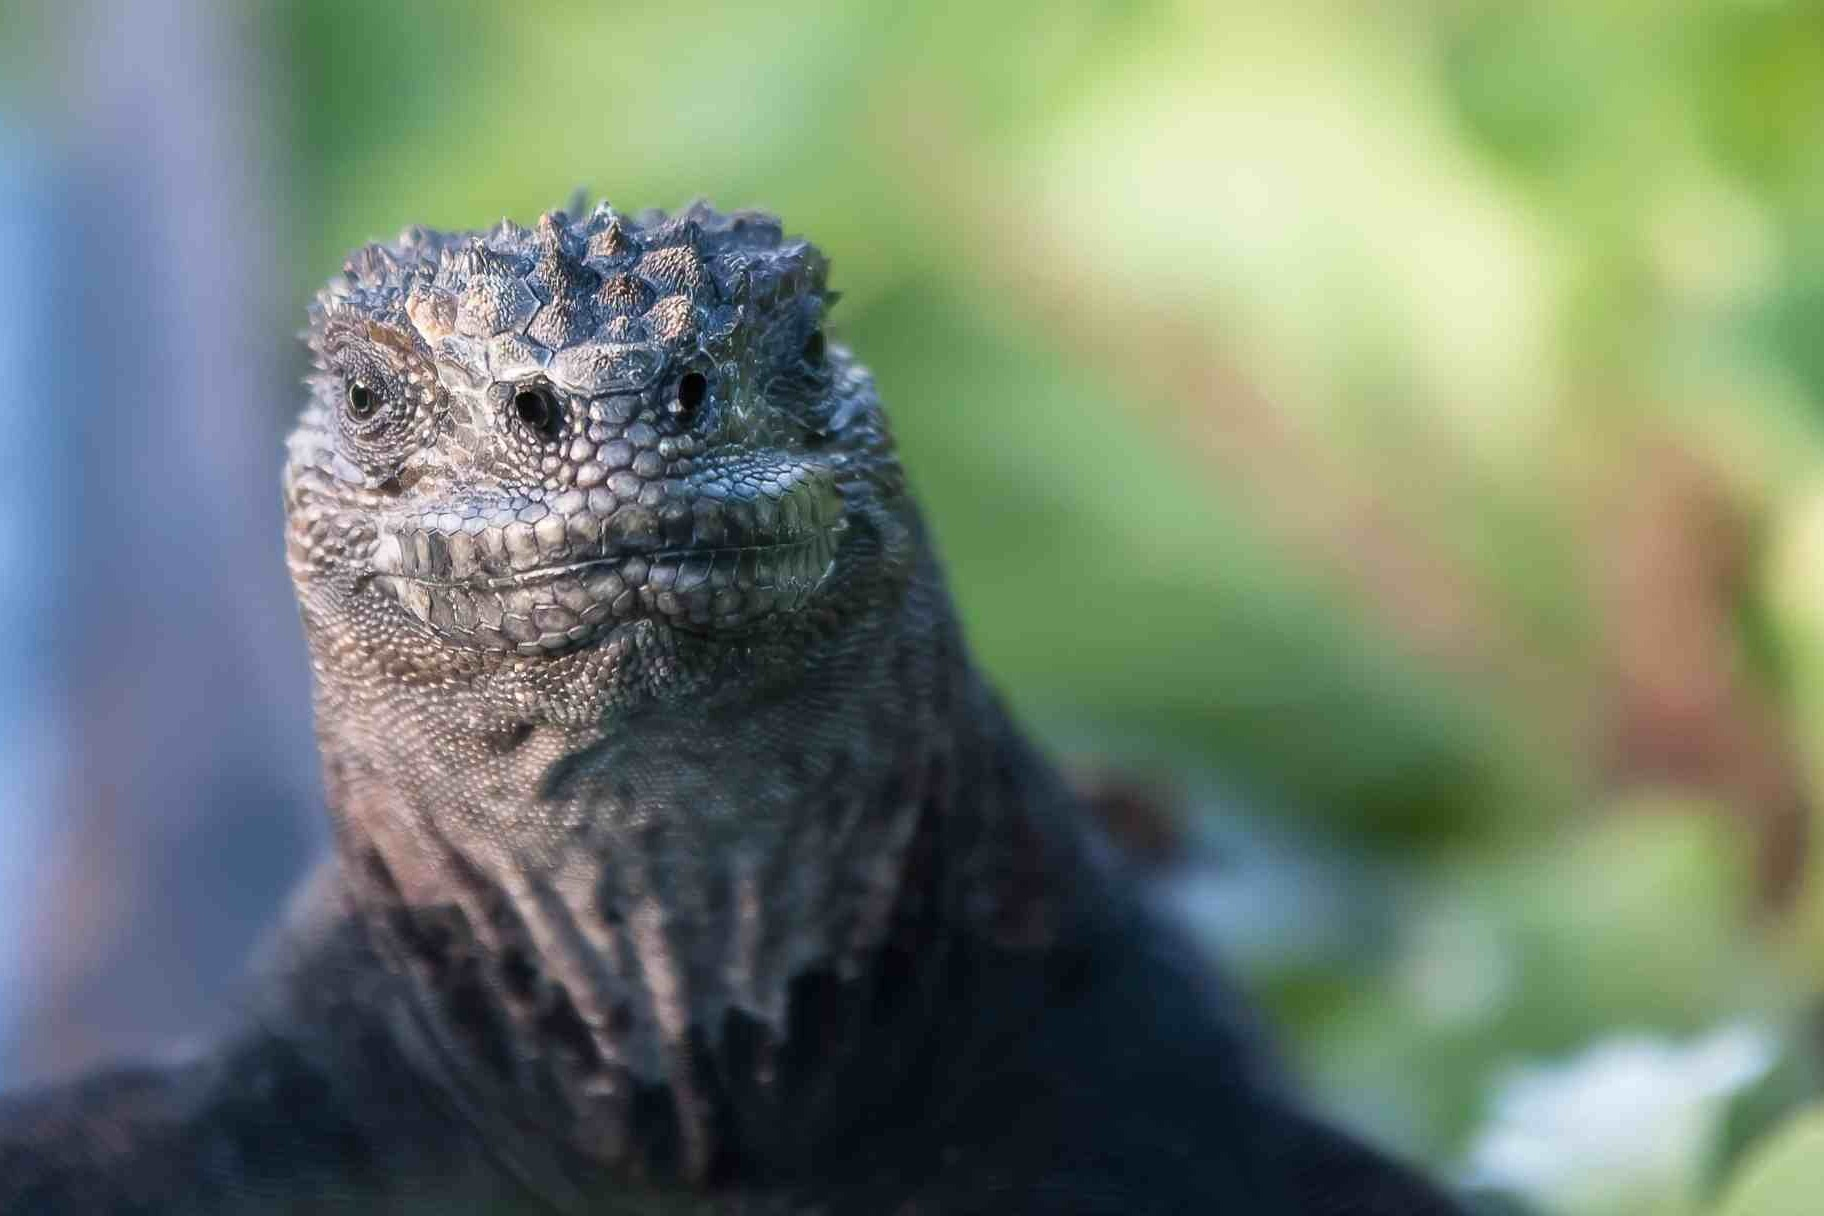 Galapagos Islands - Ecuador's Jurassic Park | Travel Story